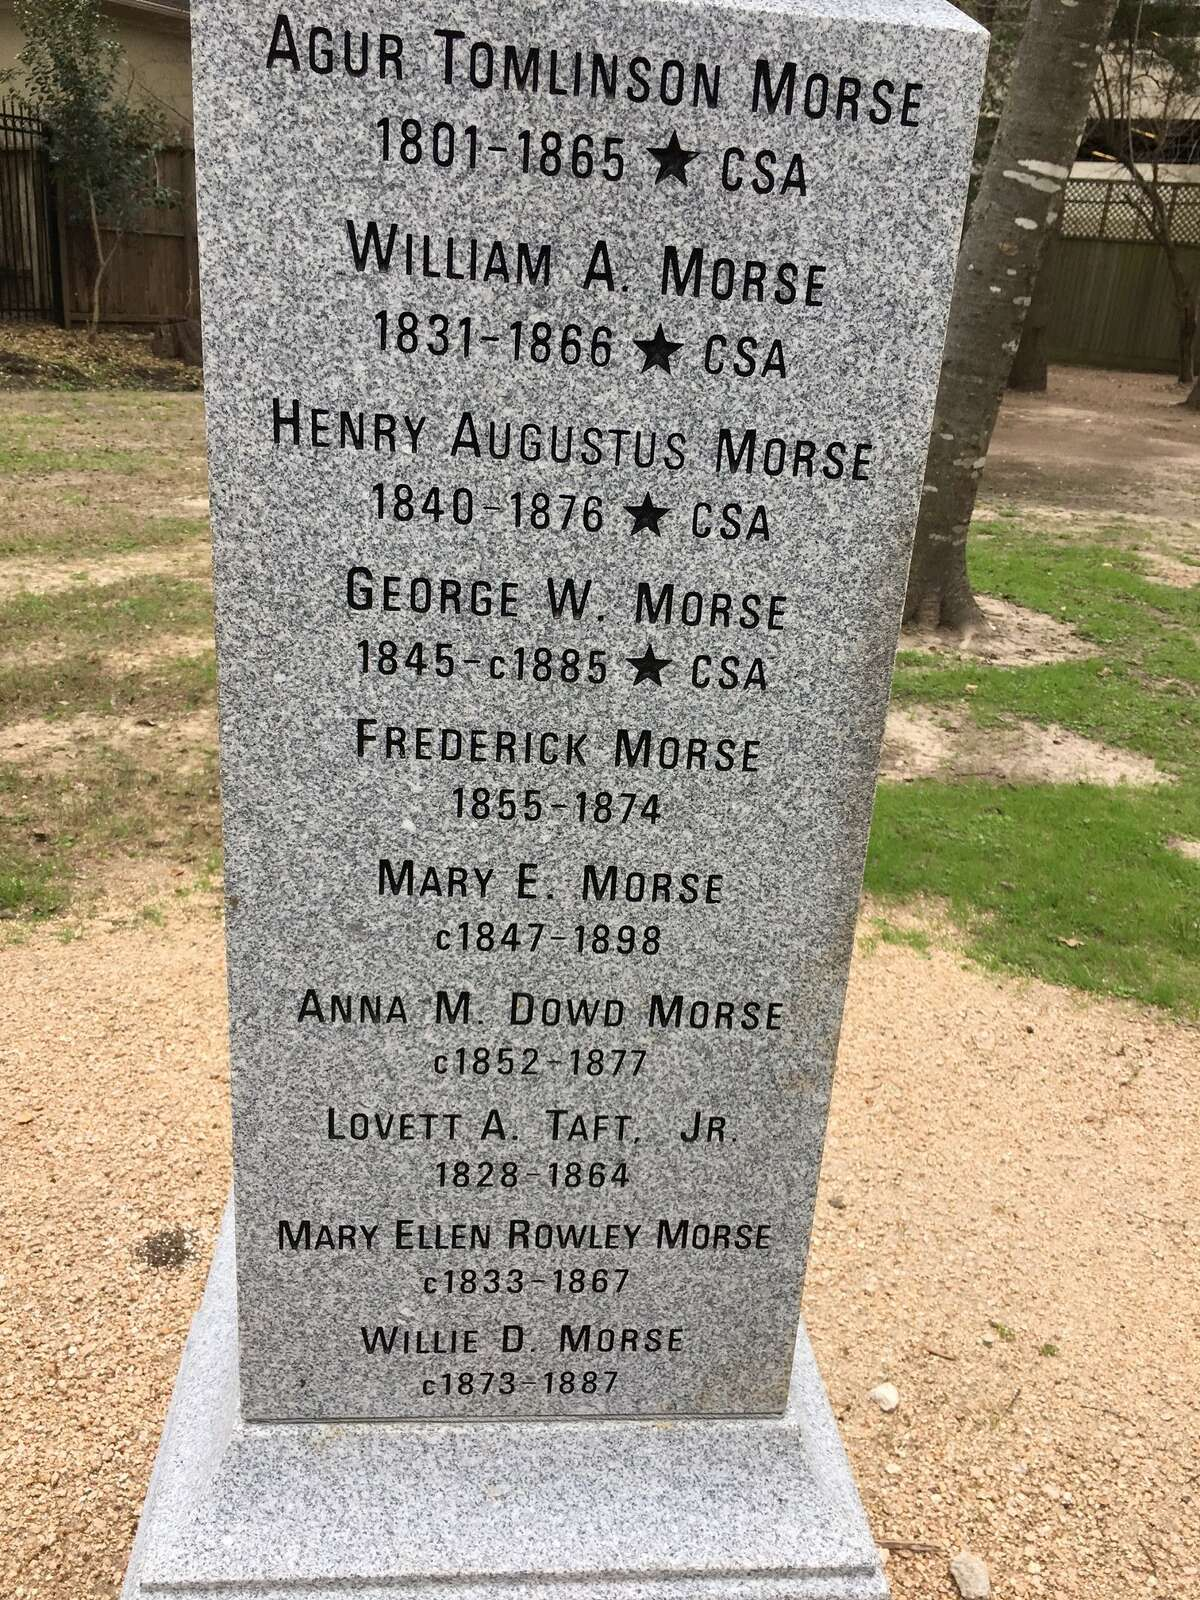 An obelisk bears the names of those buried at the Morse-Bragg cemetery.